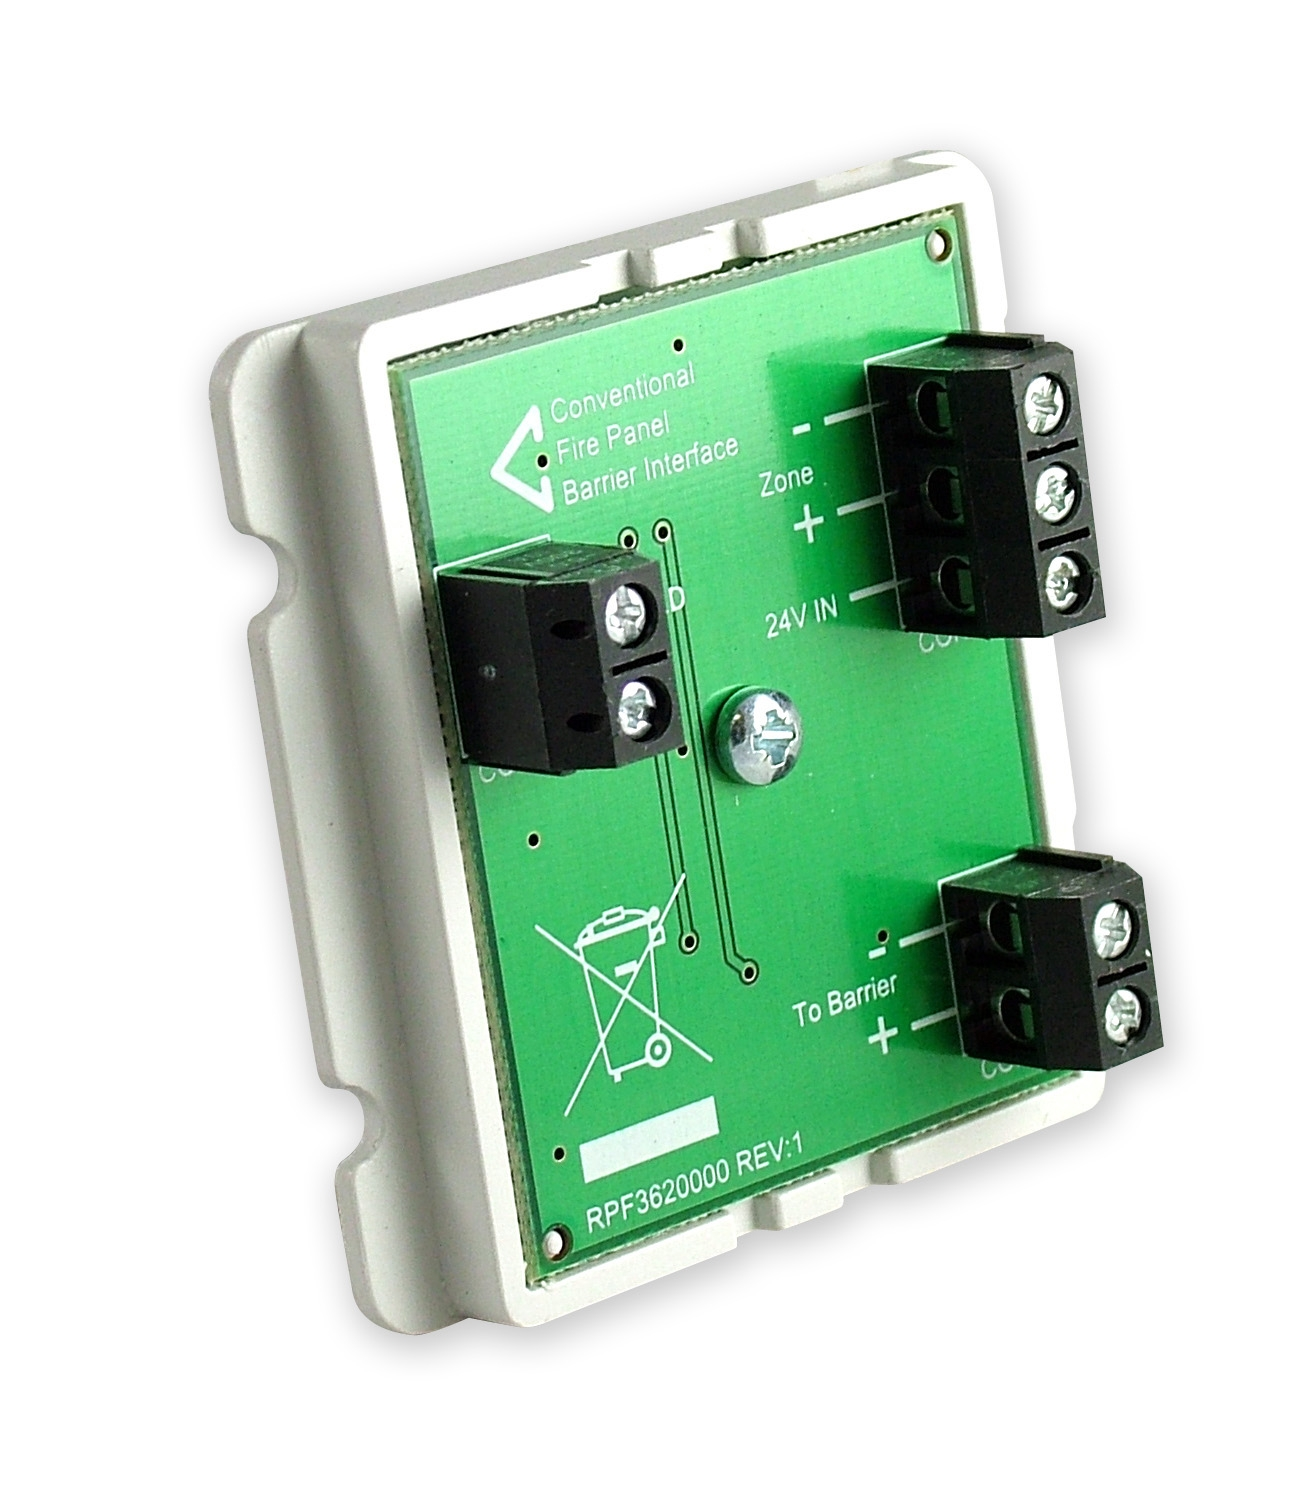 Bf362 Barrier Interface Unit For Use With Intrinsically Safe Detectors Wiring